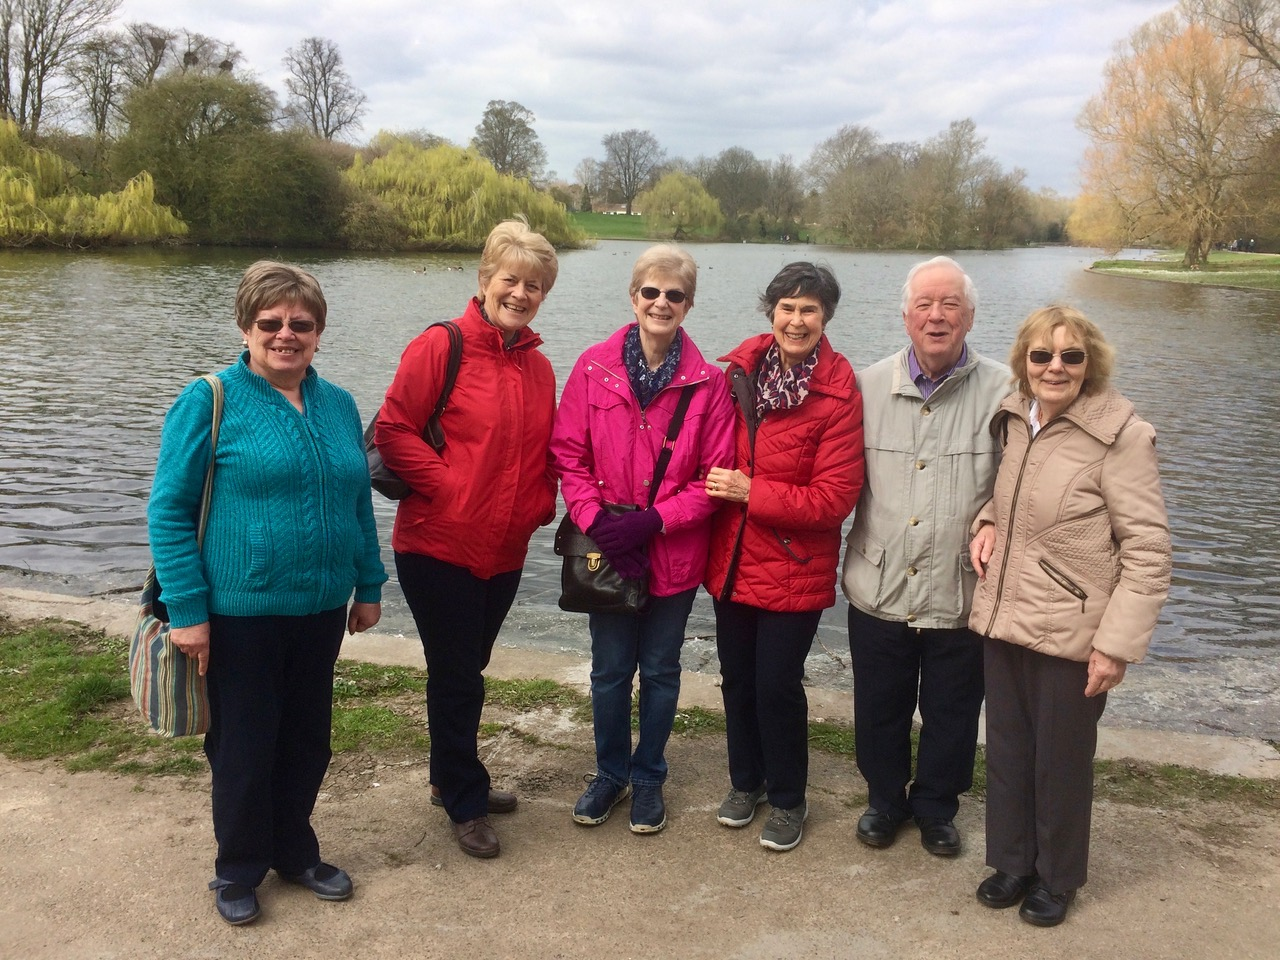 A day out at St Albans